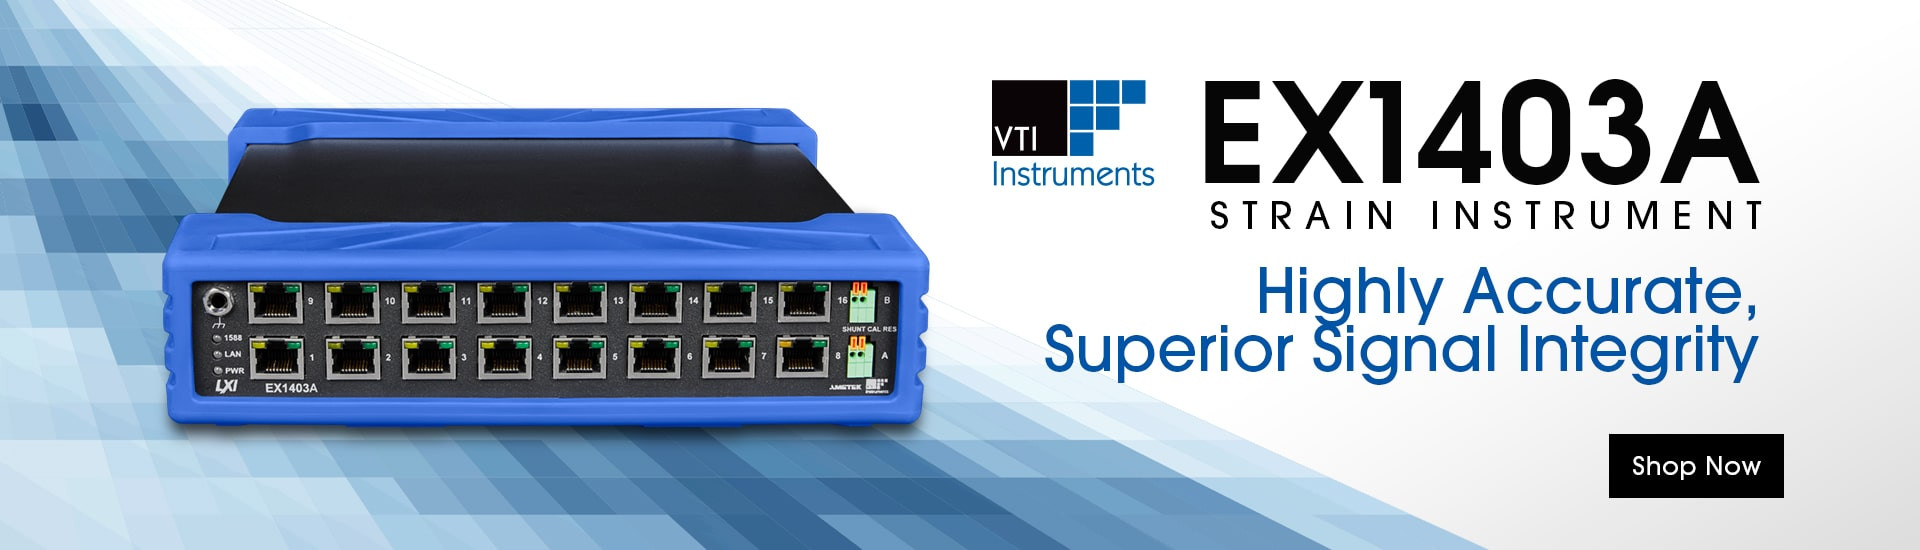 VTI Instruments EX1403A Strain Instrument: Highly Accurate, Superior Signal Integrity. Shop Now.